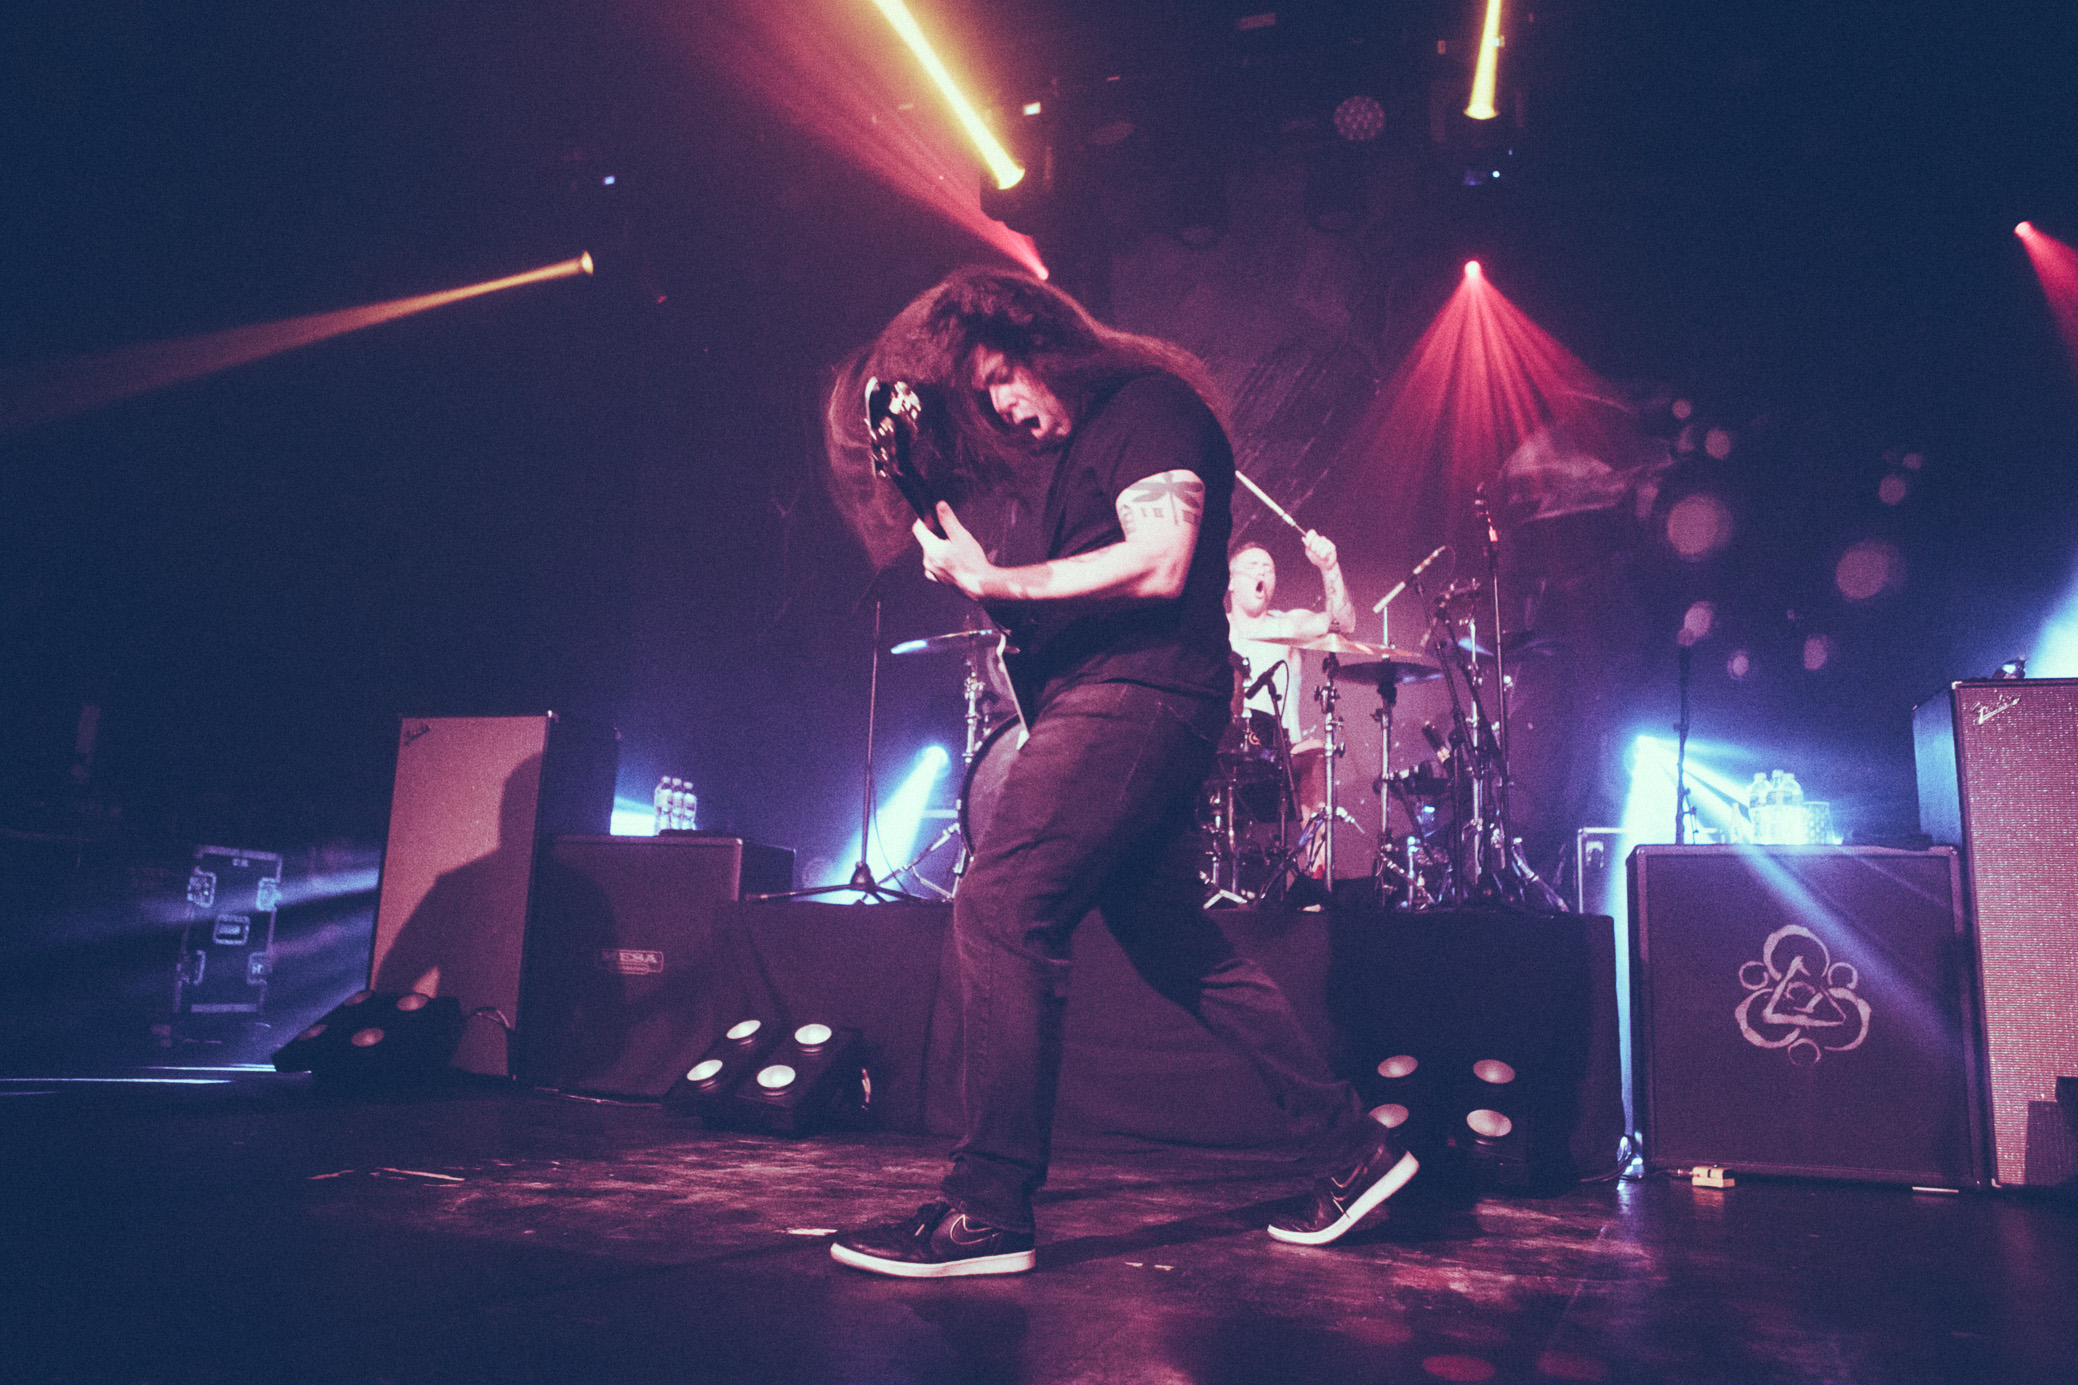 Claudio Sanchez of Coheed and Cambria performs in concert at Iron City in Birmingham, Alabama on November 14th, 2018. (Photo by David A. Smith / DSmithScenes)